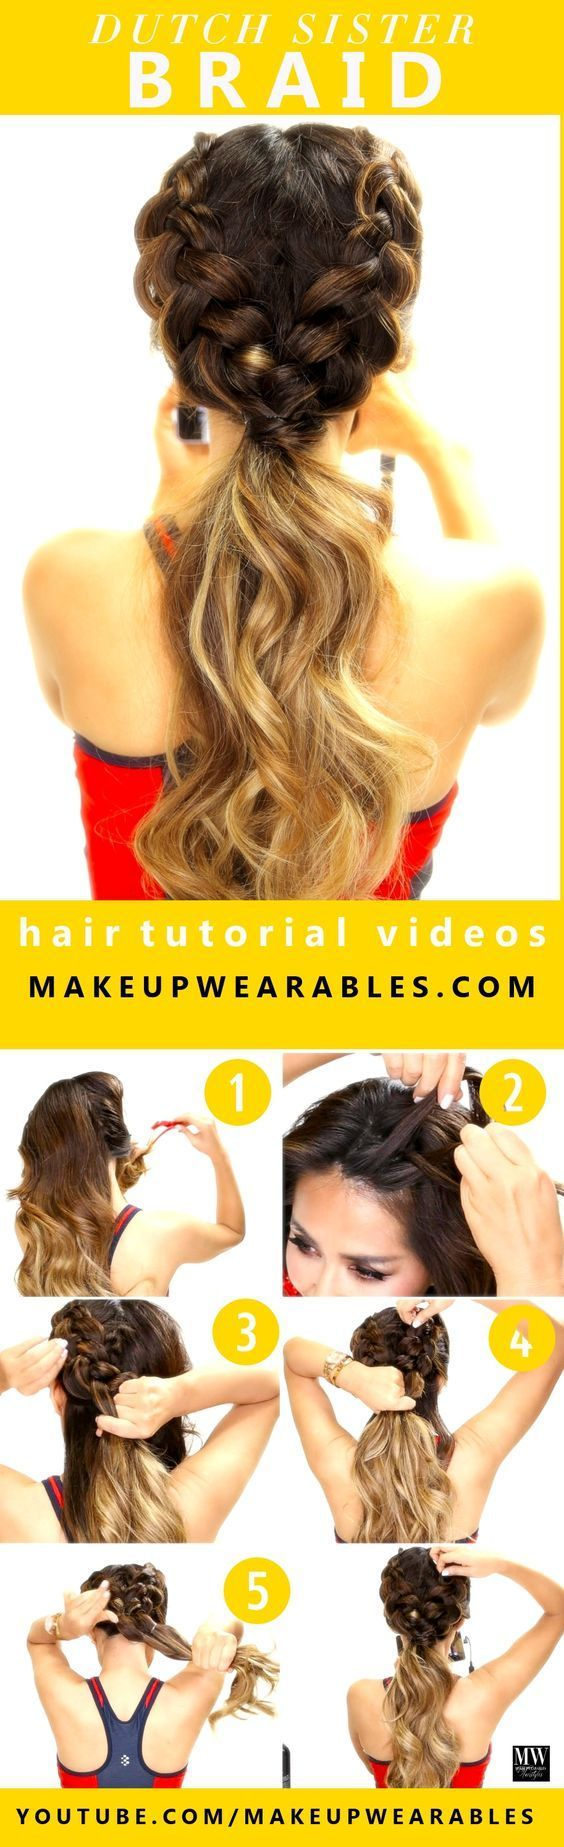 10 Easy And Cute Hair Tutorials For Any Occassion. These hairstyles are great for any occasion whether you just want quick and casual or simple yet elegant. Great for women with medium to long hair. Want no heat waves, a messy sock bun, or stylish braids? (simple hairstyles for medium hair)